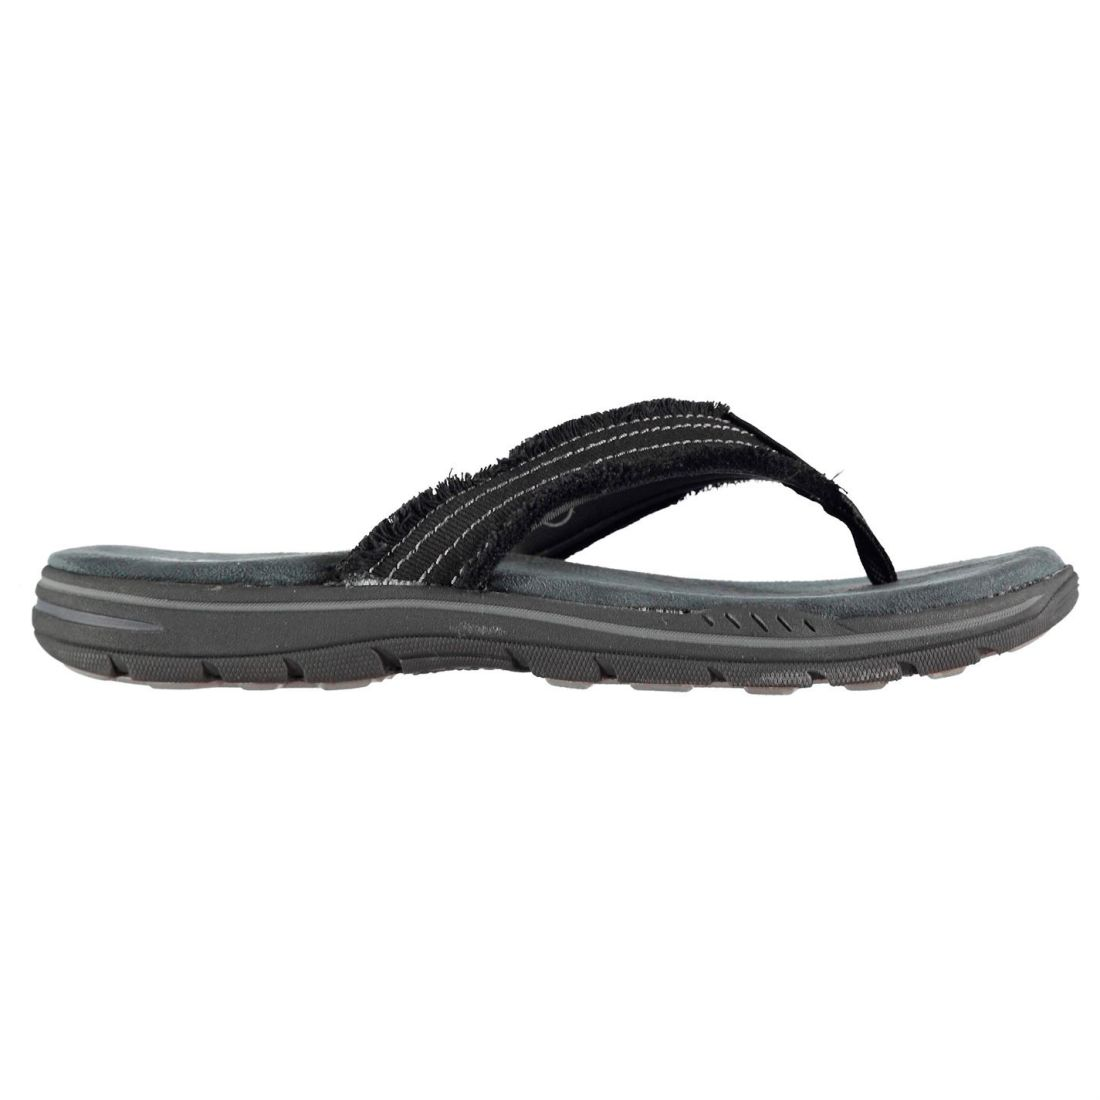 4367a2048 Skechers Even Arven Flip Flops Mens Gents Strap Toe Post Memory ...